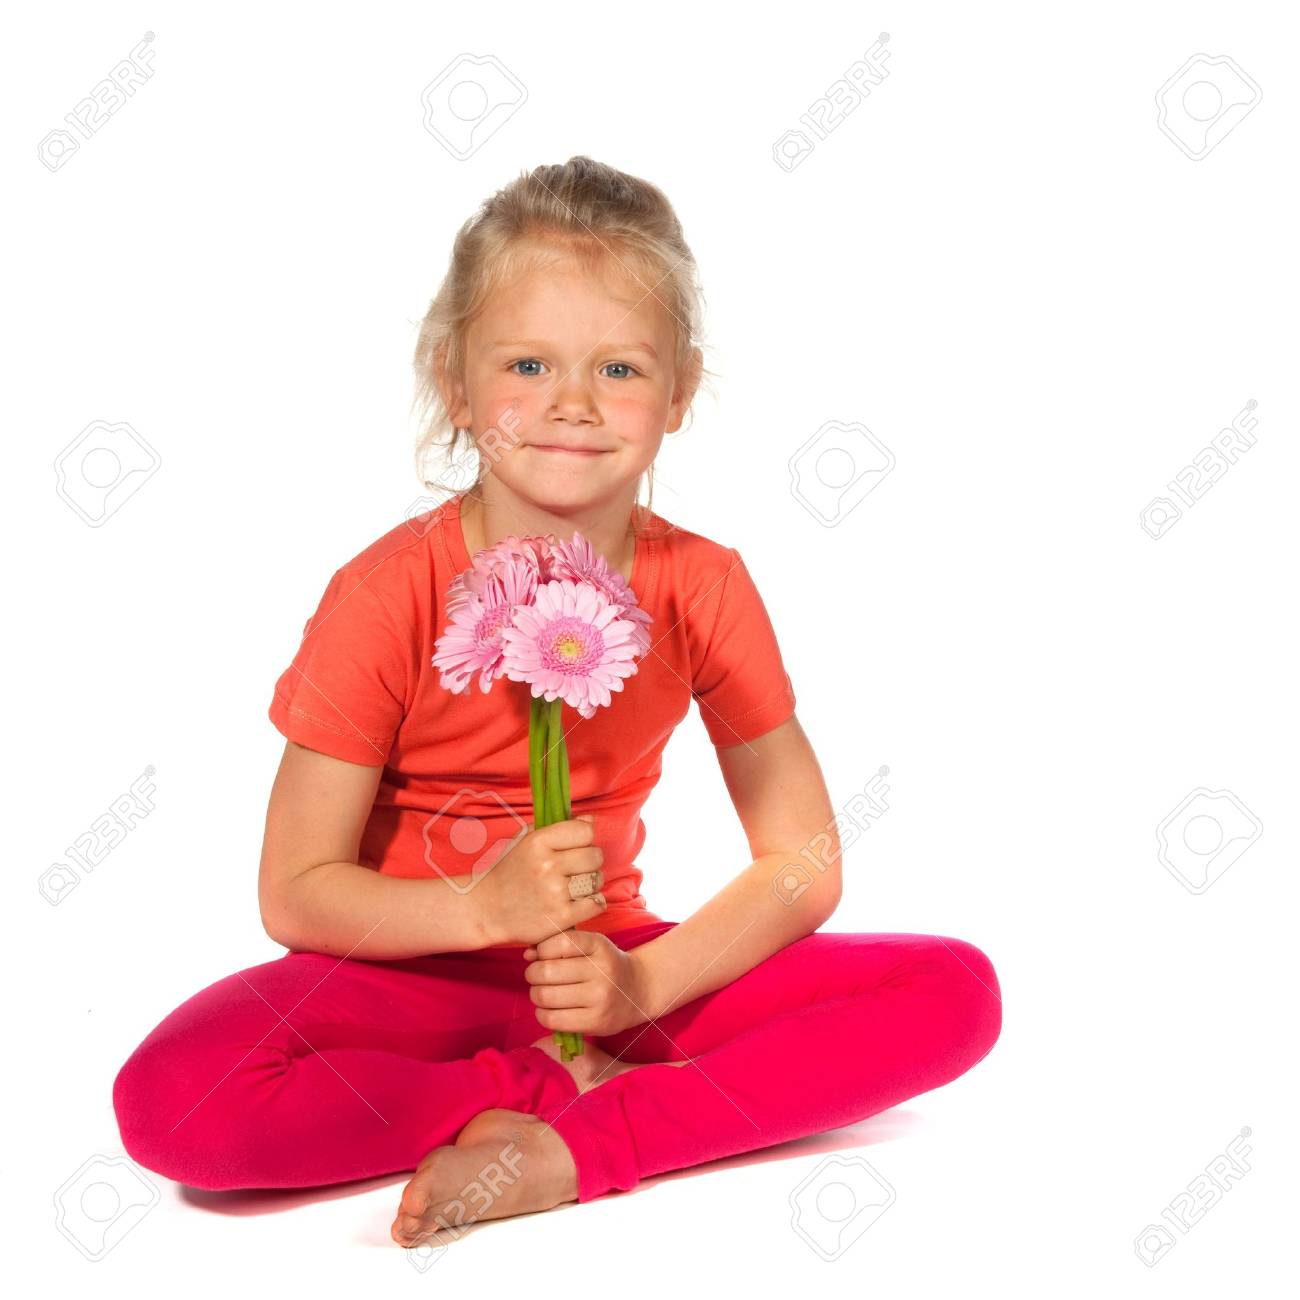 Lovely blond girl with flowers as a gift Stock Photo - 6370541